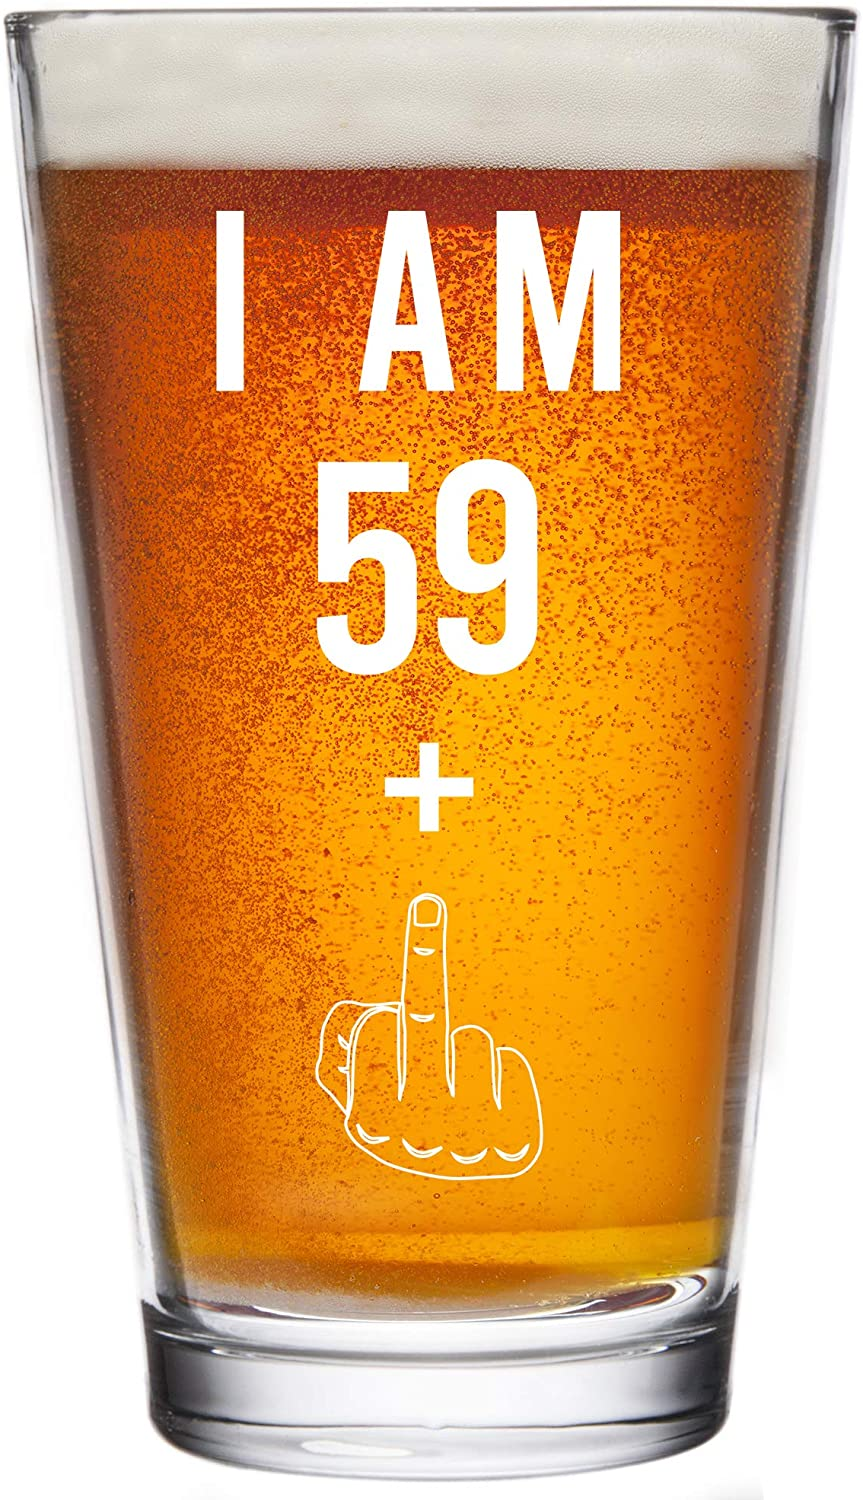 59 + One Middle Finger 60th Birthday Gifts for Men Women Beer Glass – Funny 60 Year Old Presents - 16 oz Pint Glasses Party Decorations Supplies - Craft Beers Gift Ideas for Dad Mom Husband Wife 60 th